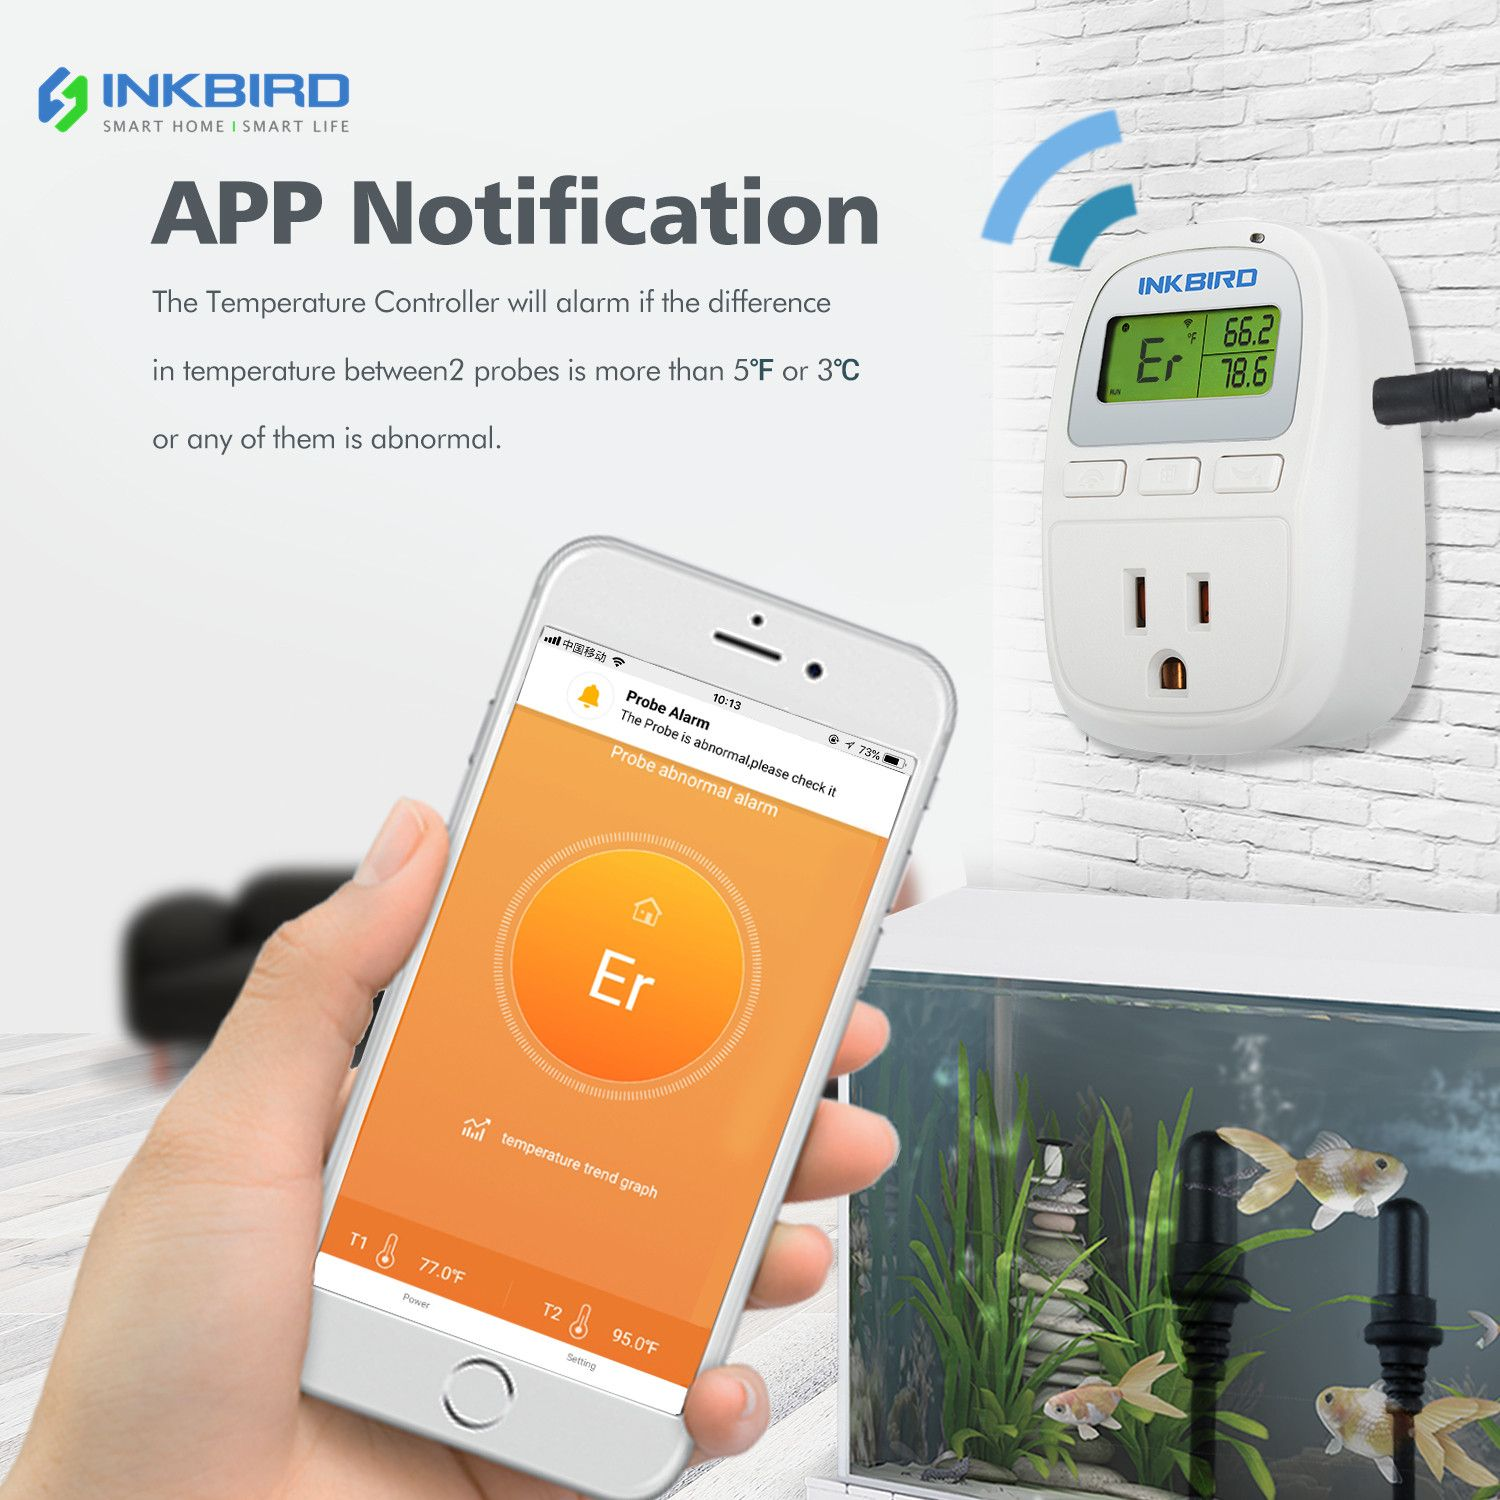 C929 Is An Inkbird Wifi Version Heating Or Cooling Thermostat Which Could Check The Temperature Reading On The App Whenever And Wherever You Re Are Once You Co